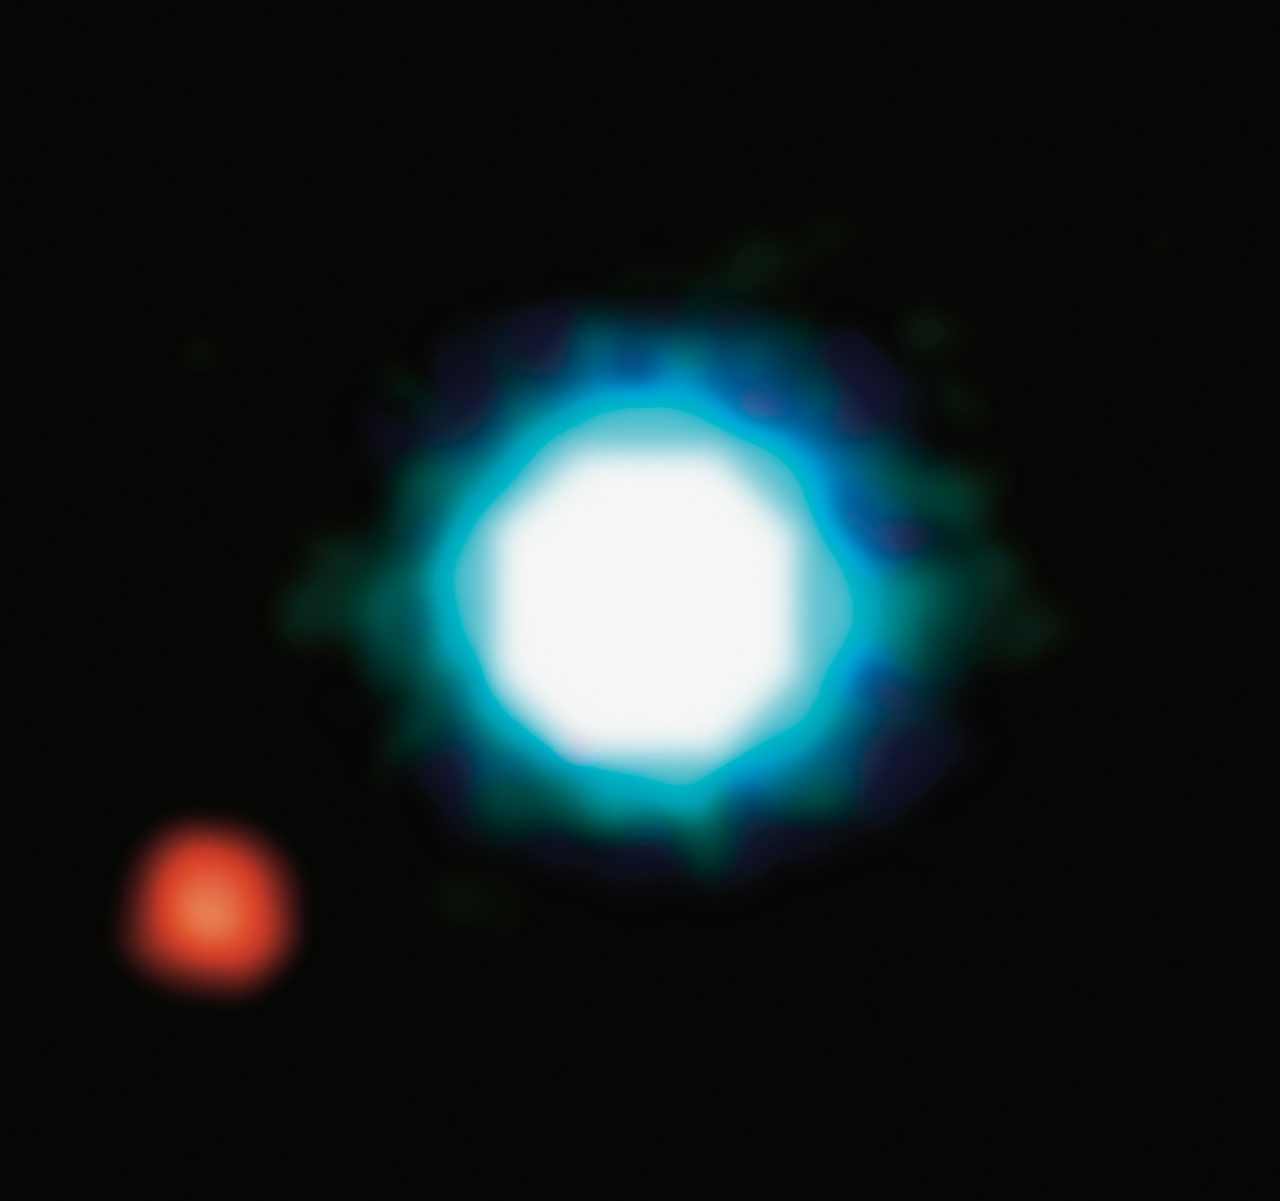 2M1207b - first image of an exoplanet